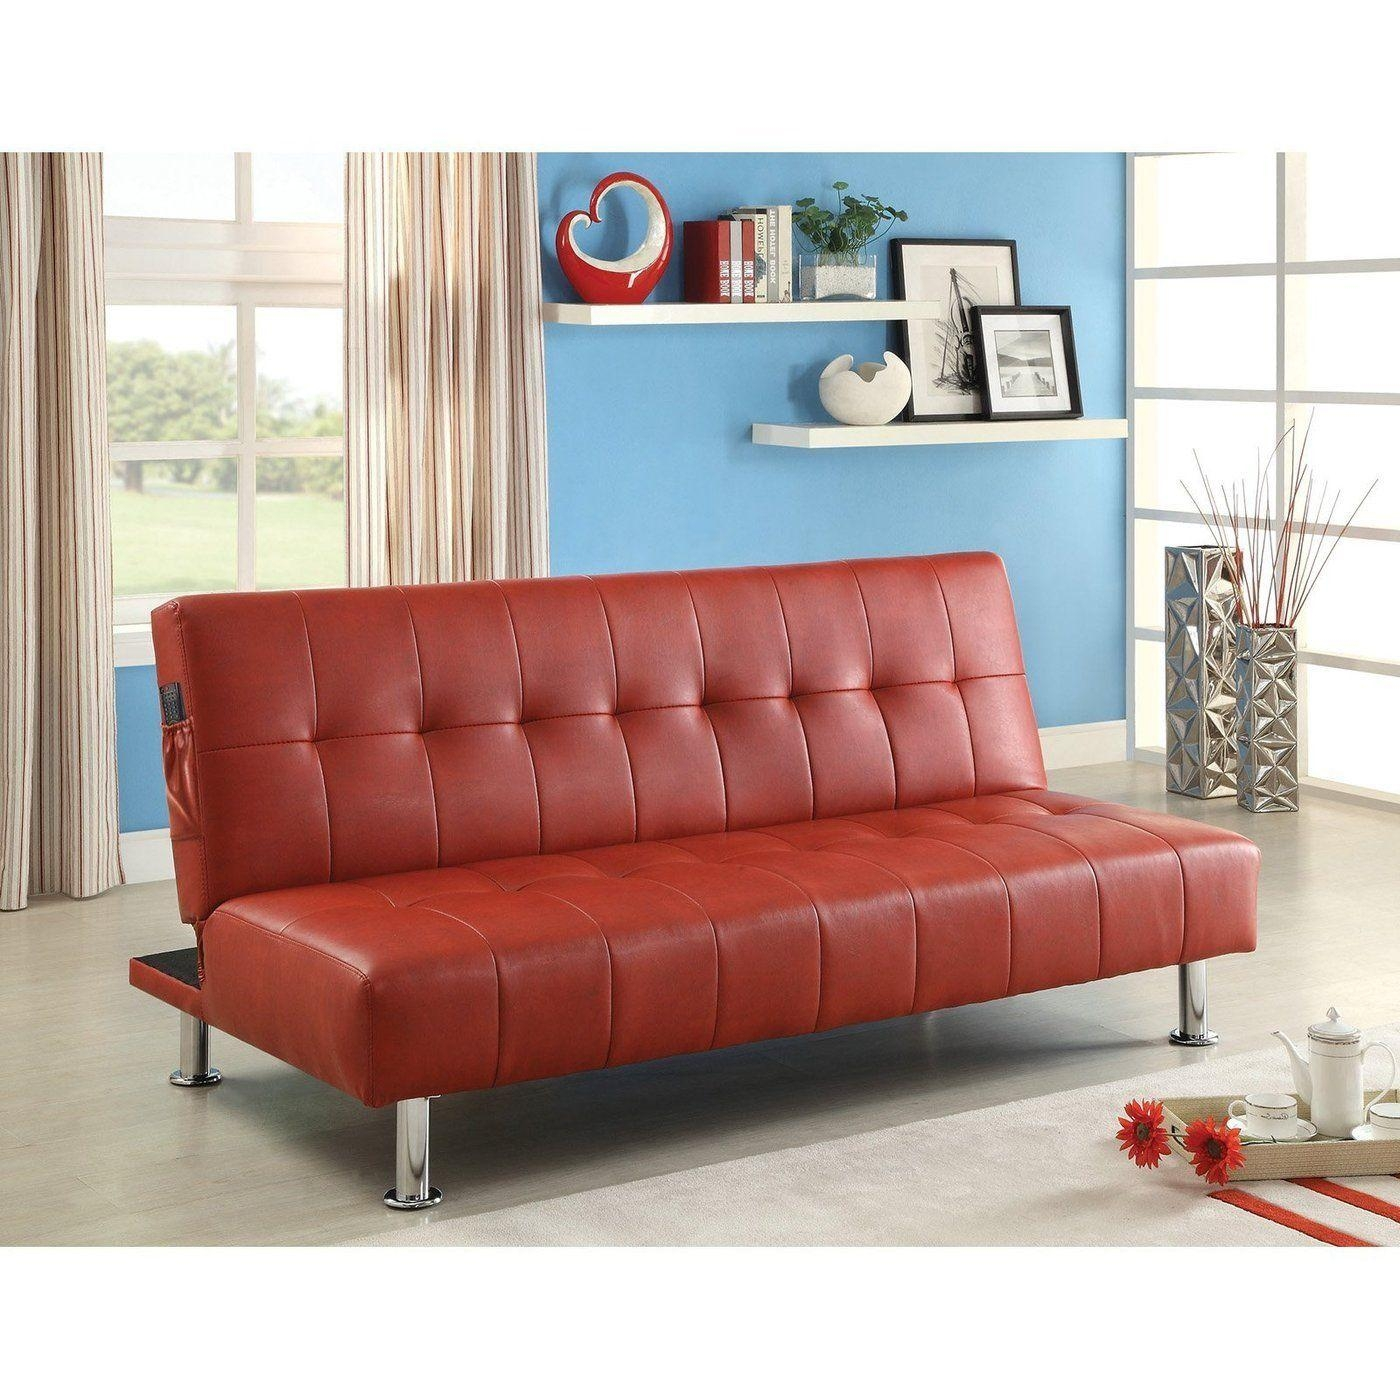 Sofas Center : Unusual Big Lots Sofa Images Design Furniture5 Regarding Unusual Sofas (View 5 of 20)